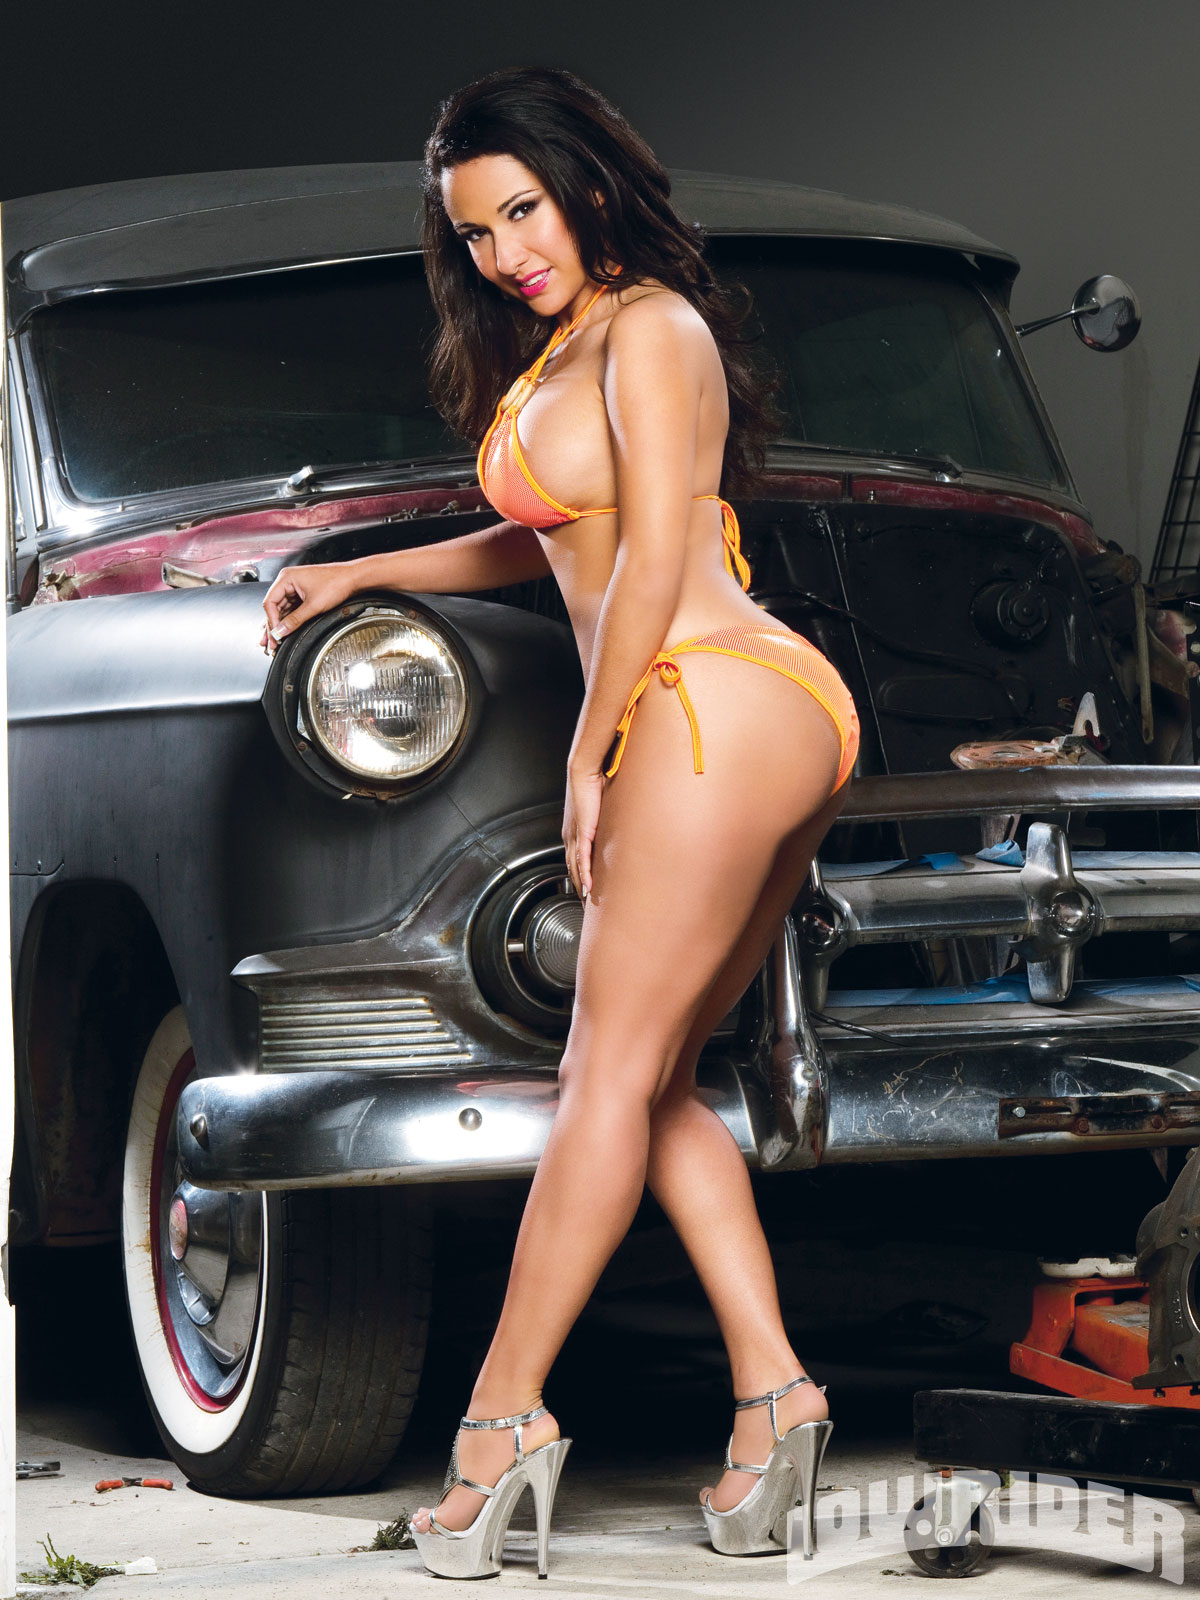 Photos of naked lowridergirls models